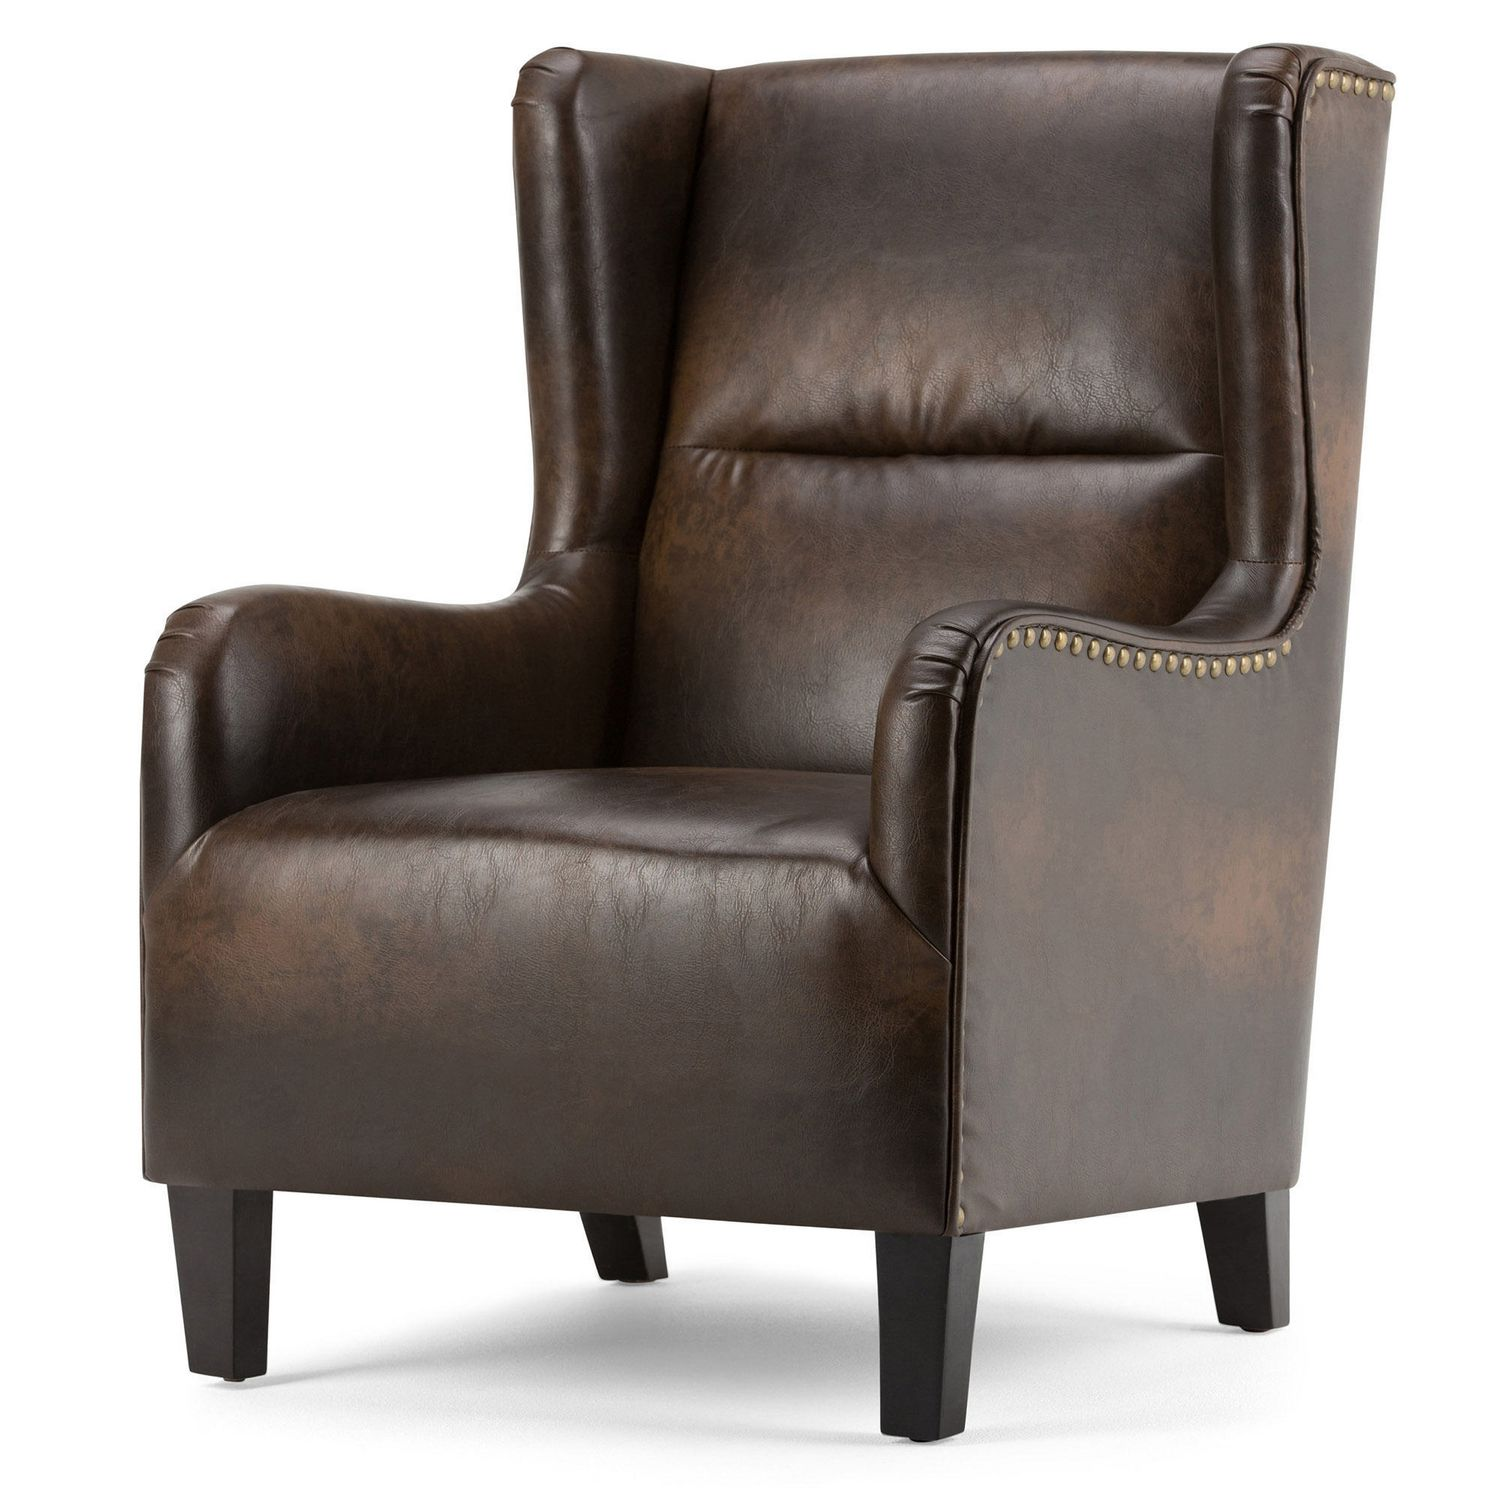 Oversized Wingback Chair Wyndenhall Manford Wingback Chair